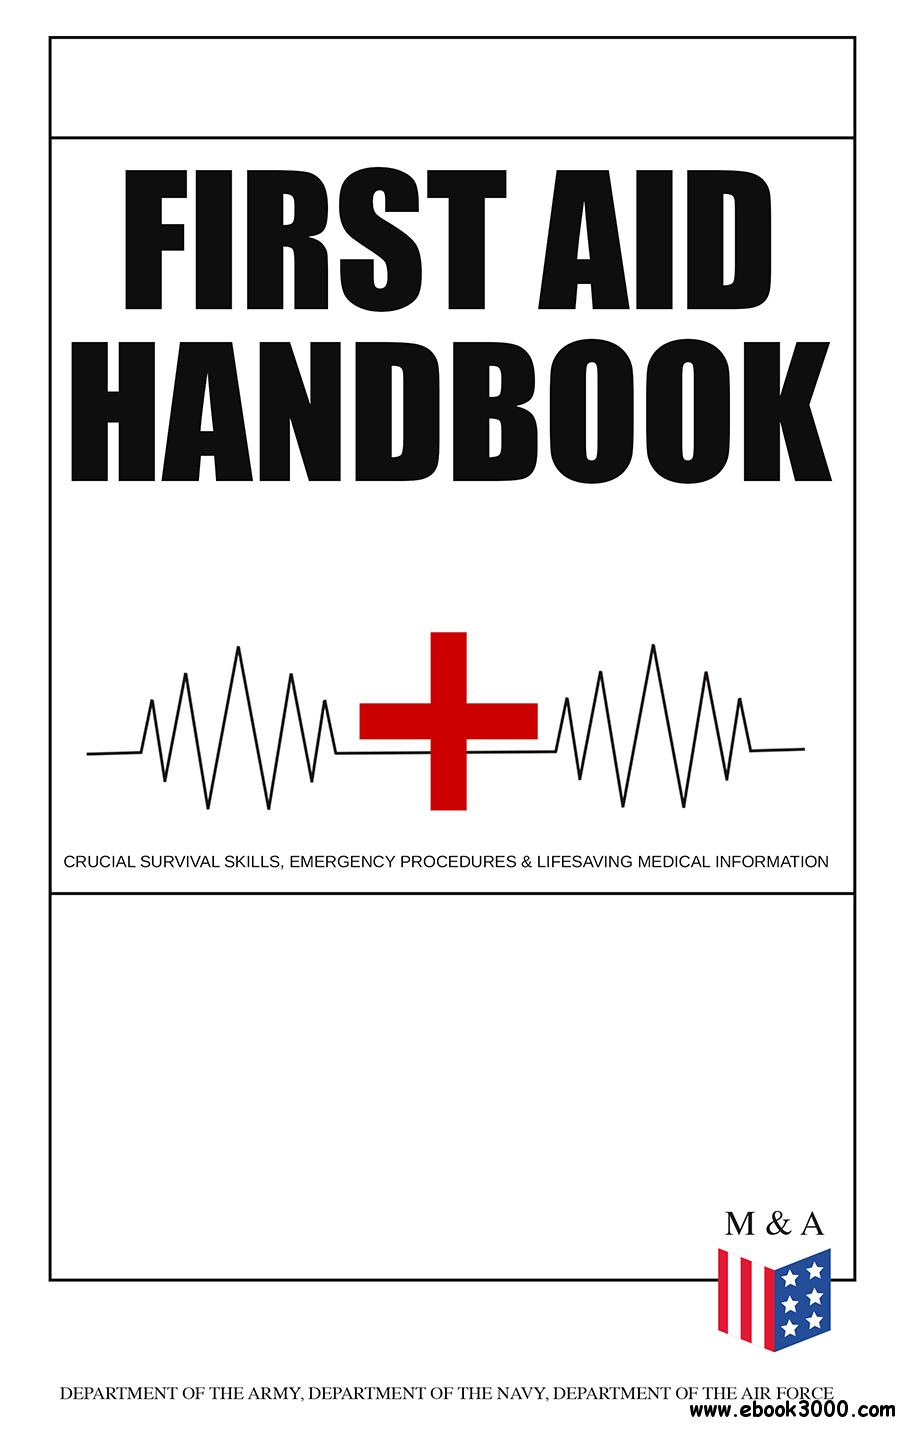 First Aid Handbook--Crucial Survival Skills, Emergency Procedures & Lifesaving Medical Information